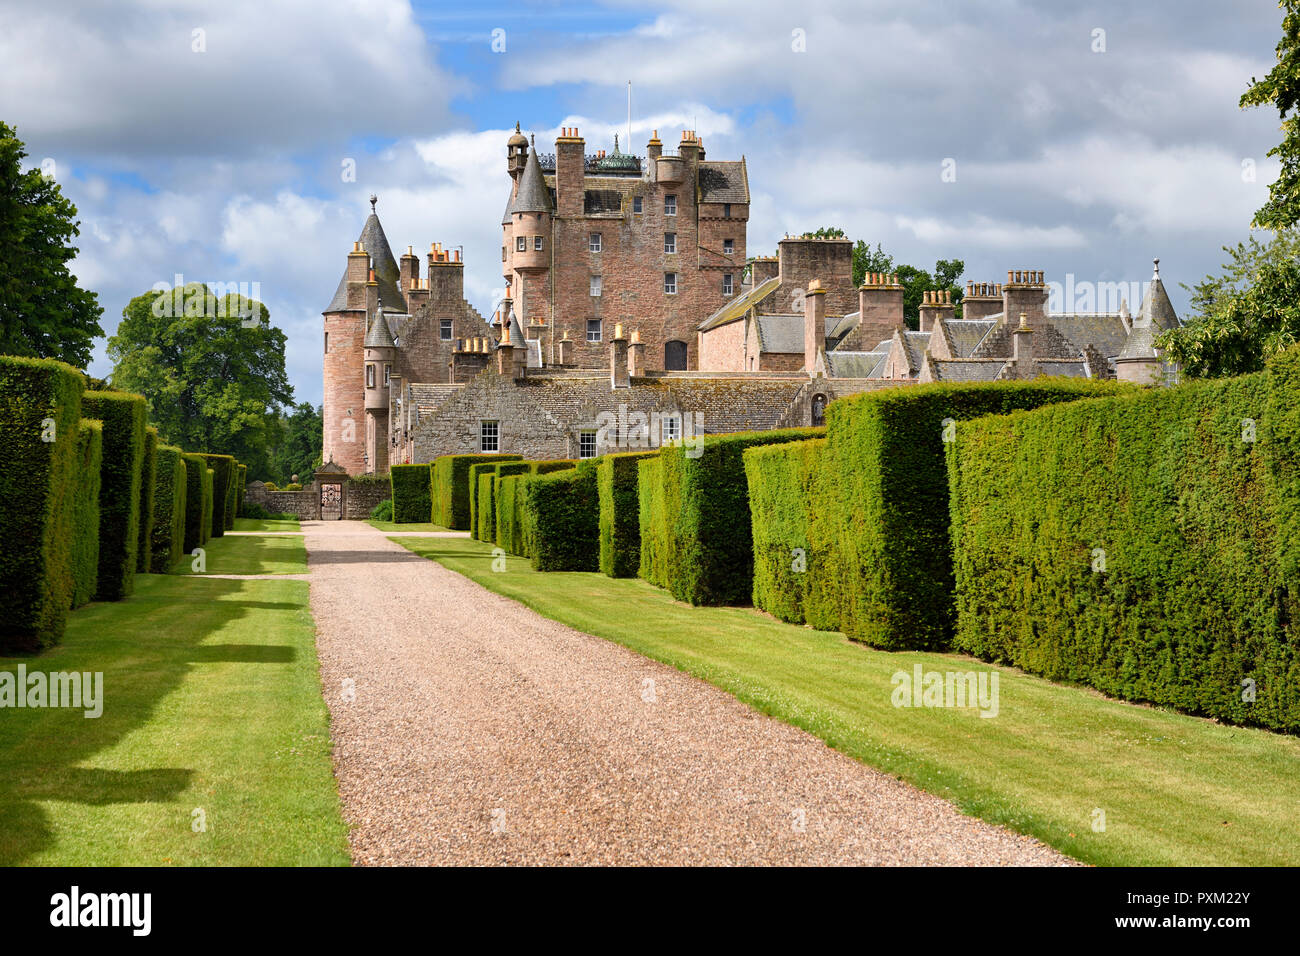 Red stone path with yew hedges in east Italian Garden of Glamis Castle home of Earl and Countess of Strathmore and Kinghorne Scotland UK - Stock Image